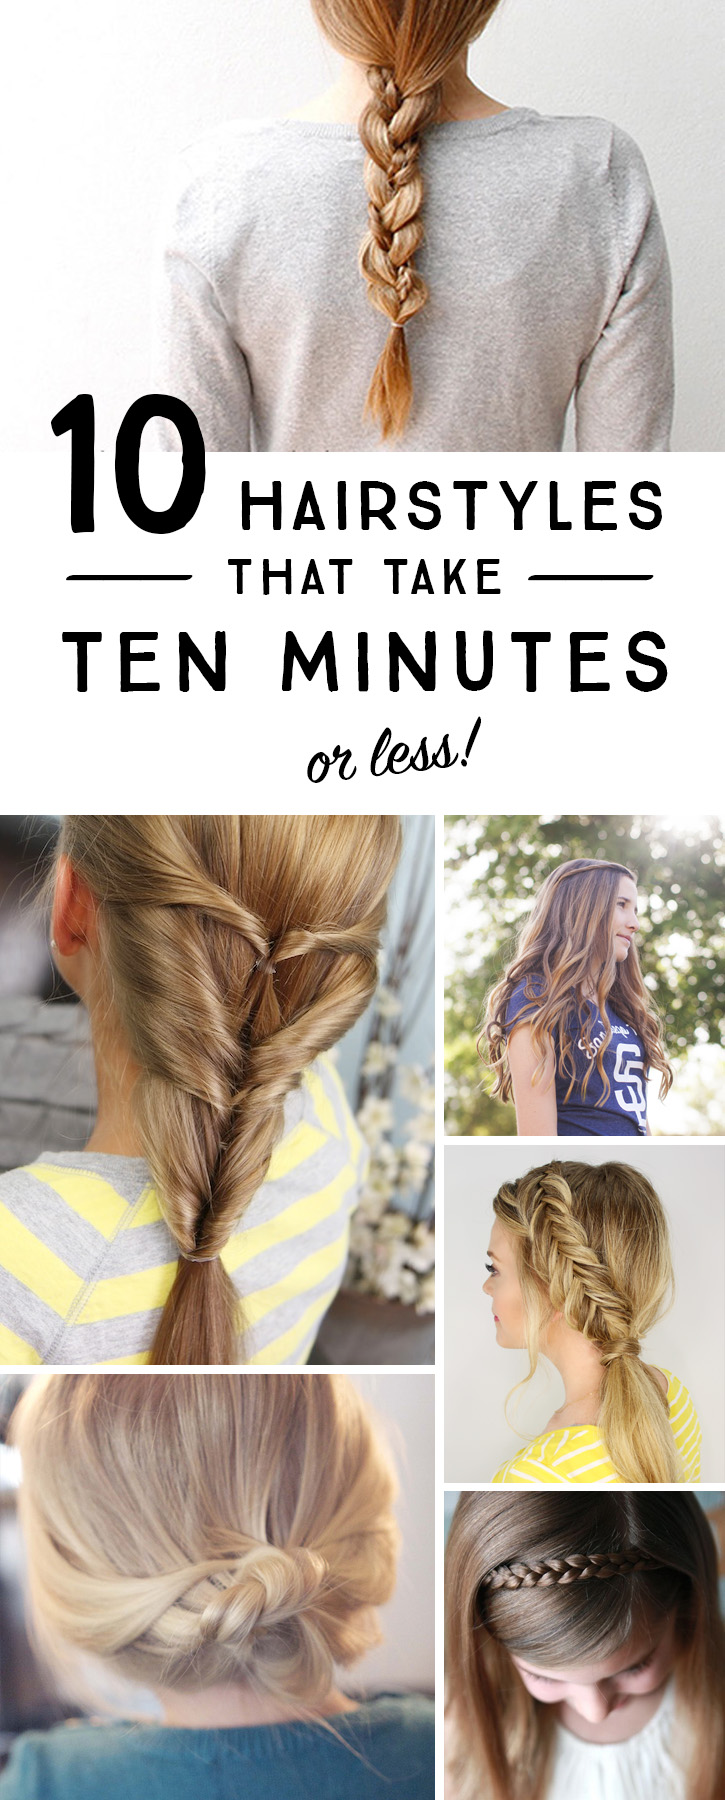 Streamline the morning hair routine with these 10 simple hairstyles that take 10 minutes or less!